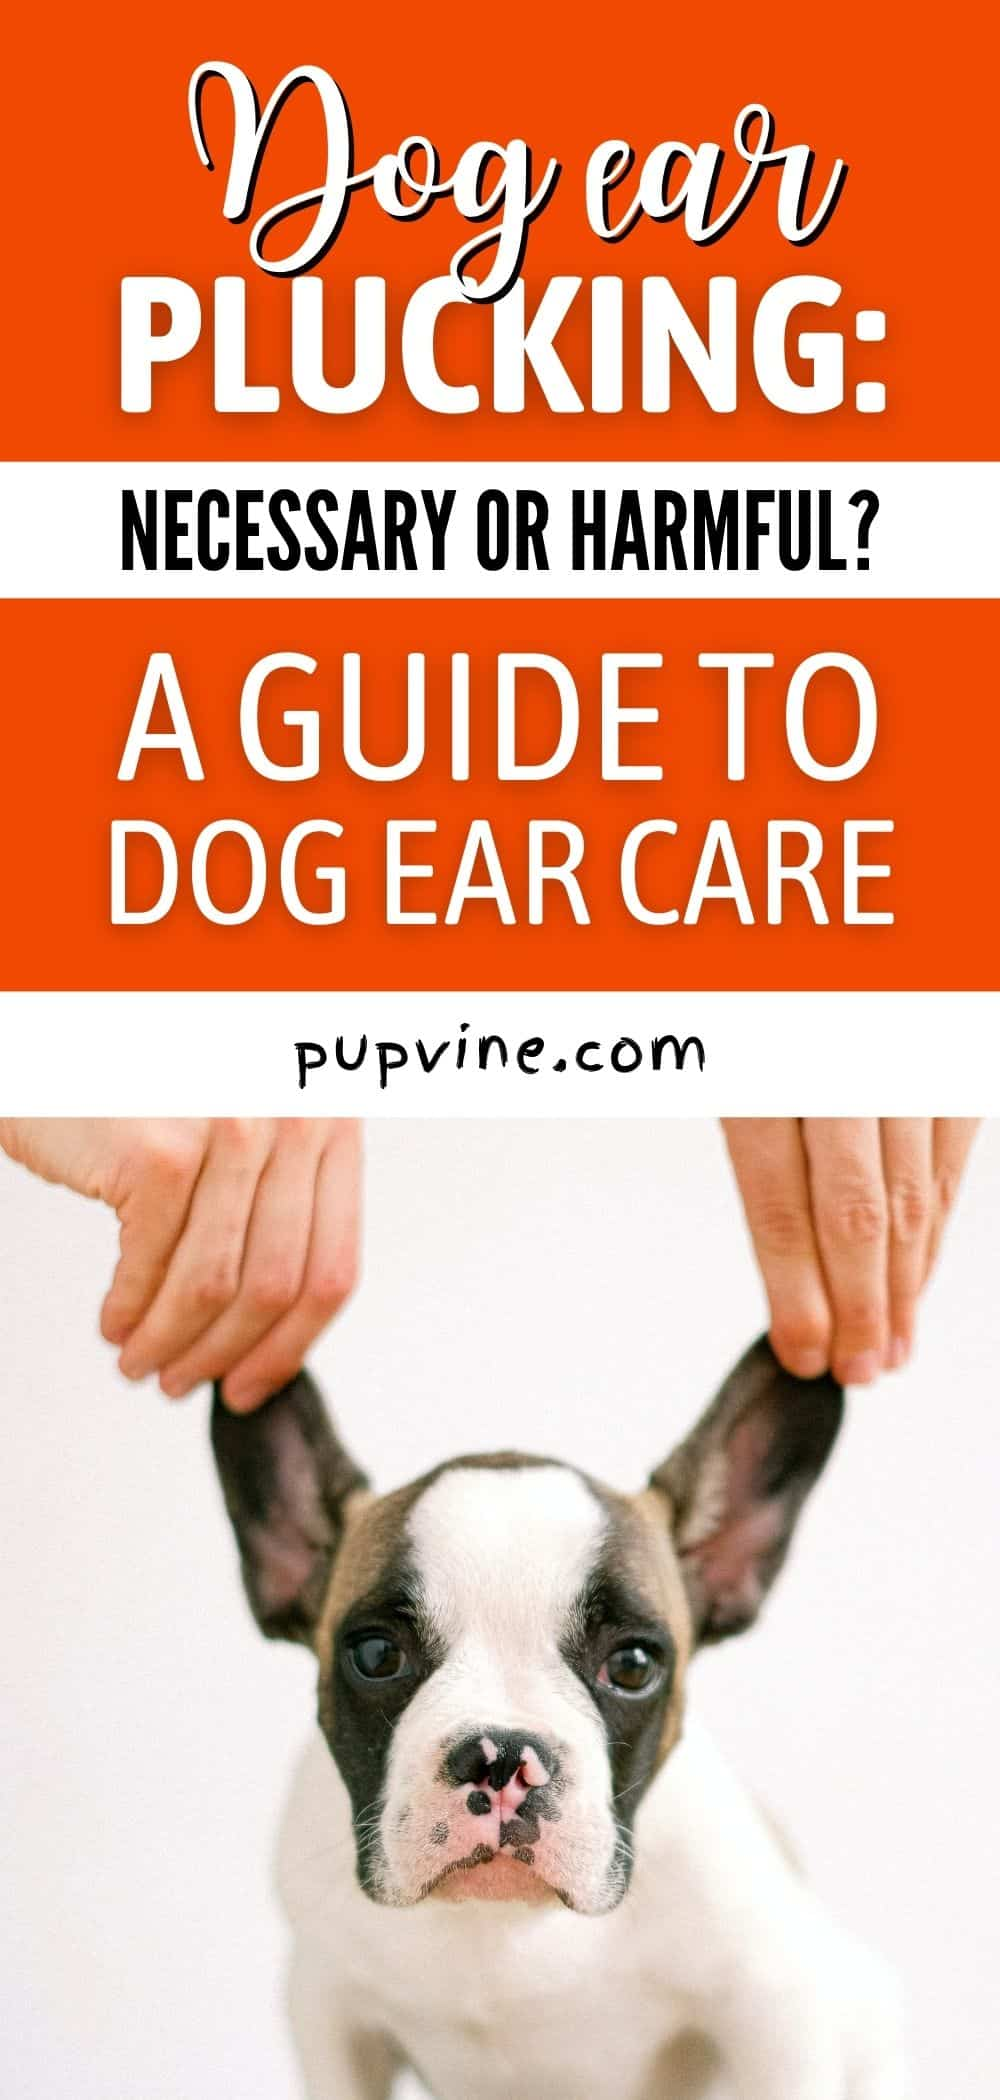 Dog Ear Plucking: Necessary Or Harmful? A Guide To Dog Ear Care